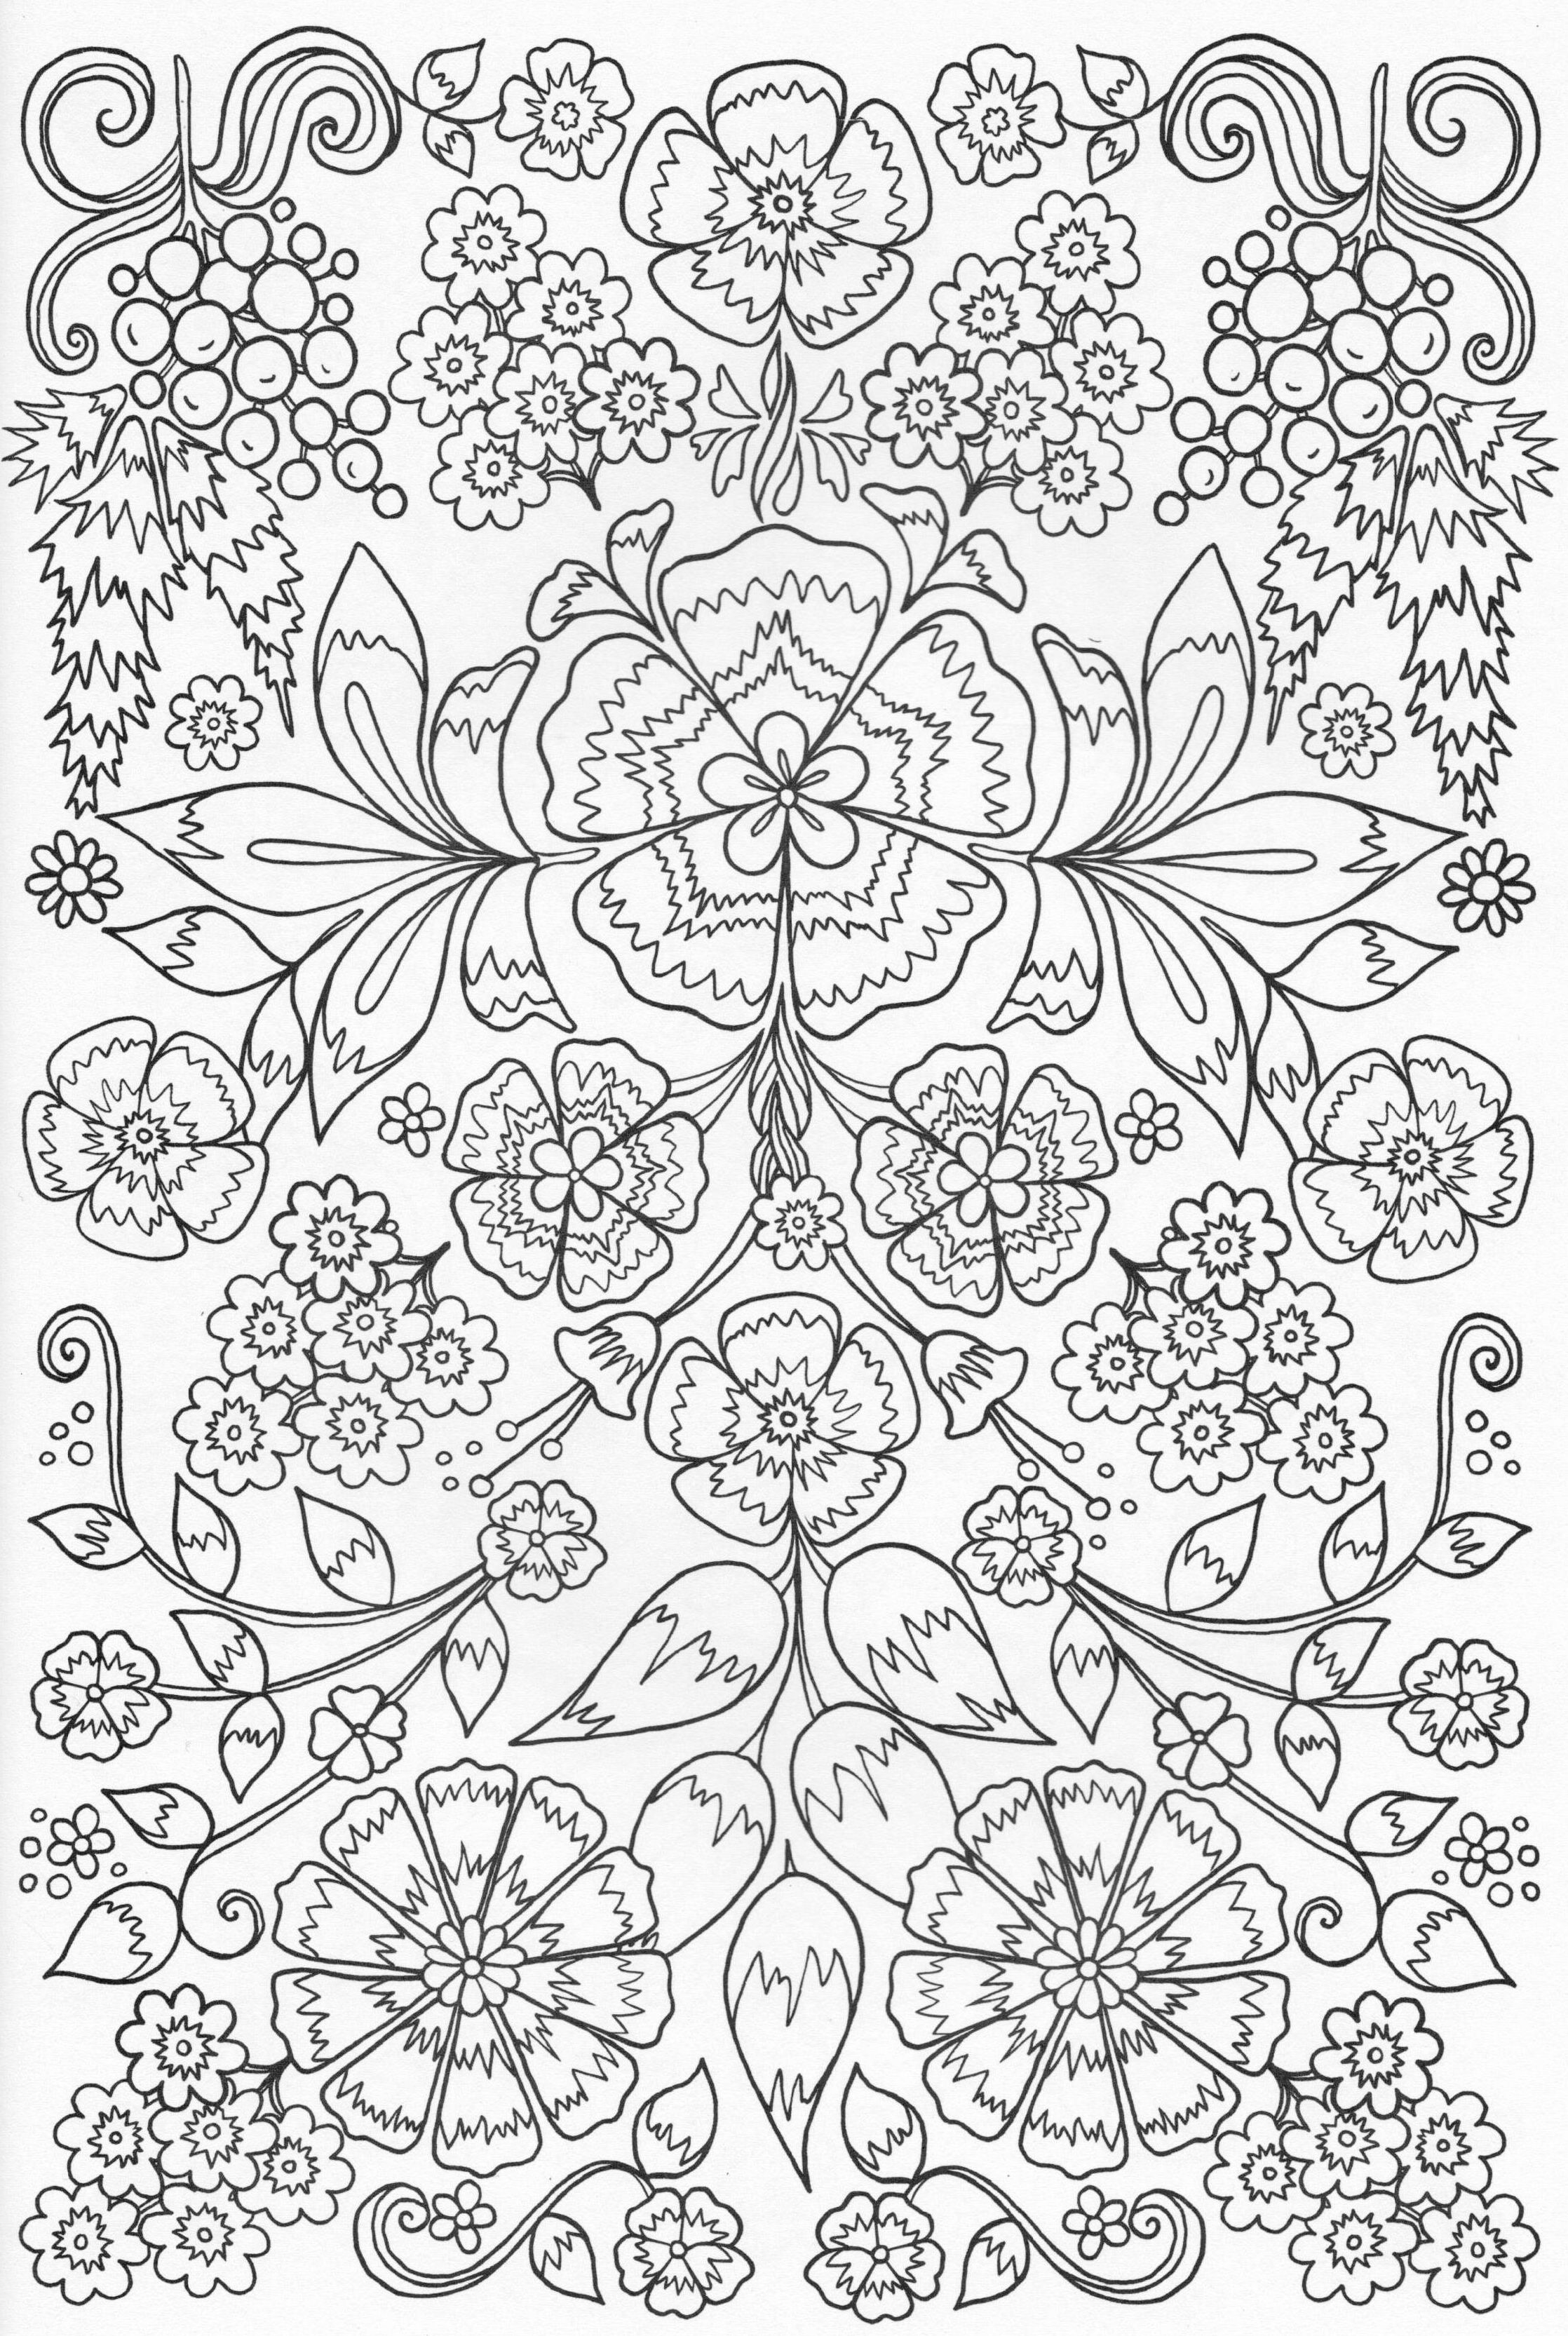 Adult coloring page | Just for fun | Pinterest | Colorear, Mandalas ...